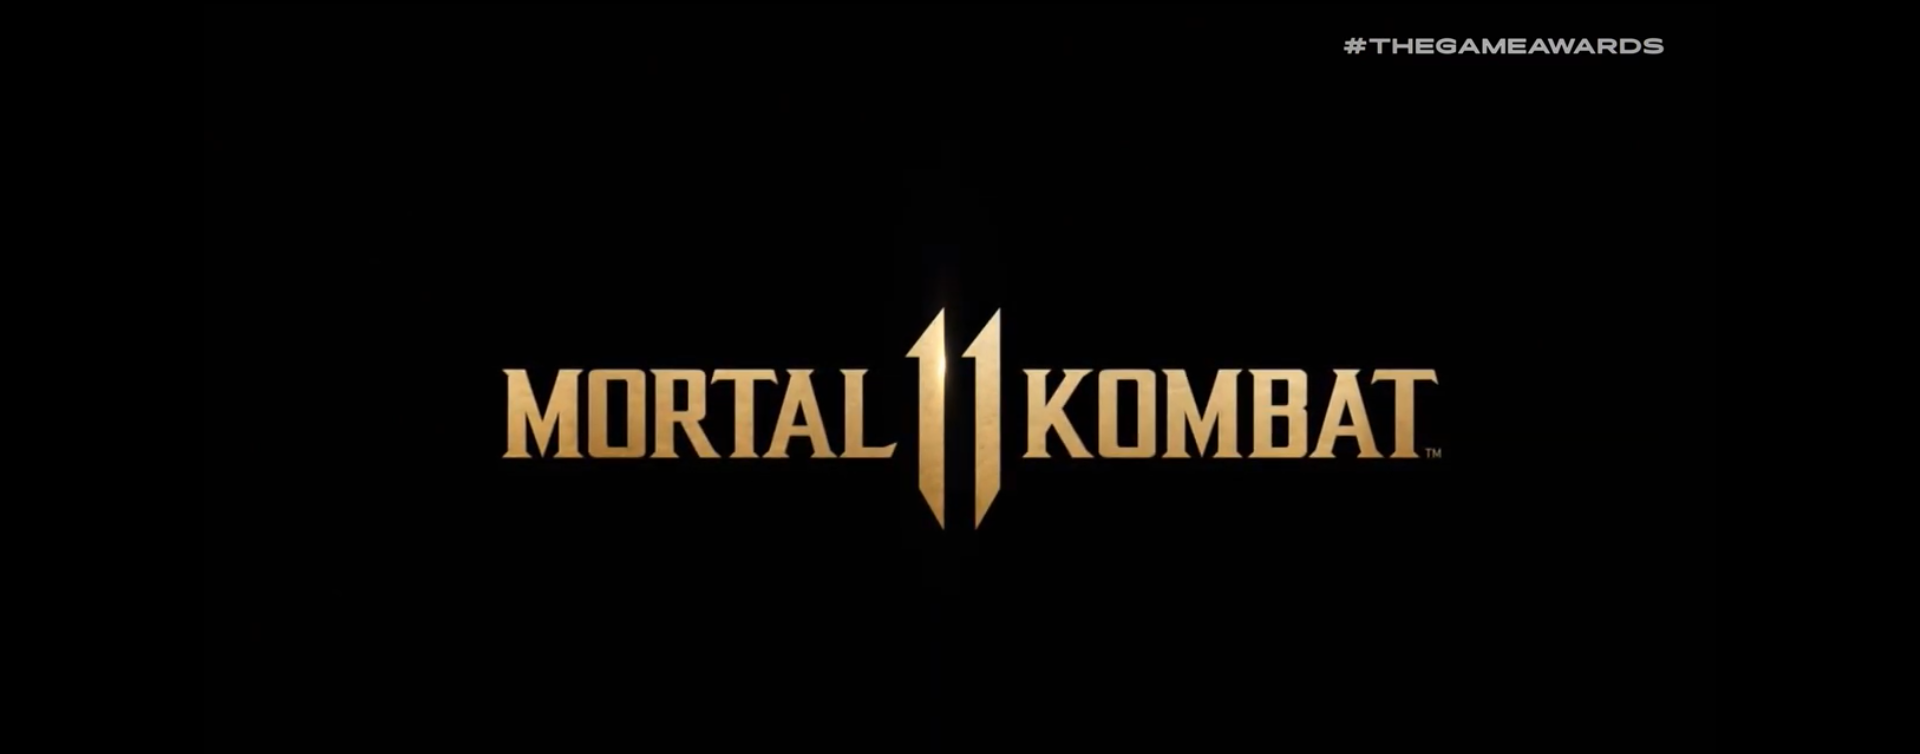 Mortal Kombat 11 Confirmed for Nintendo Switch